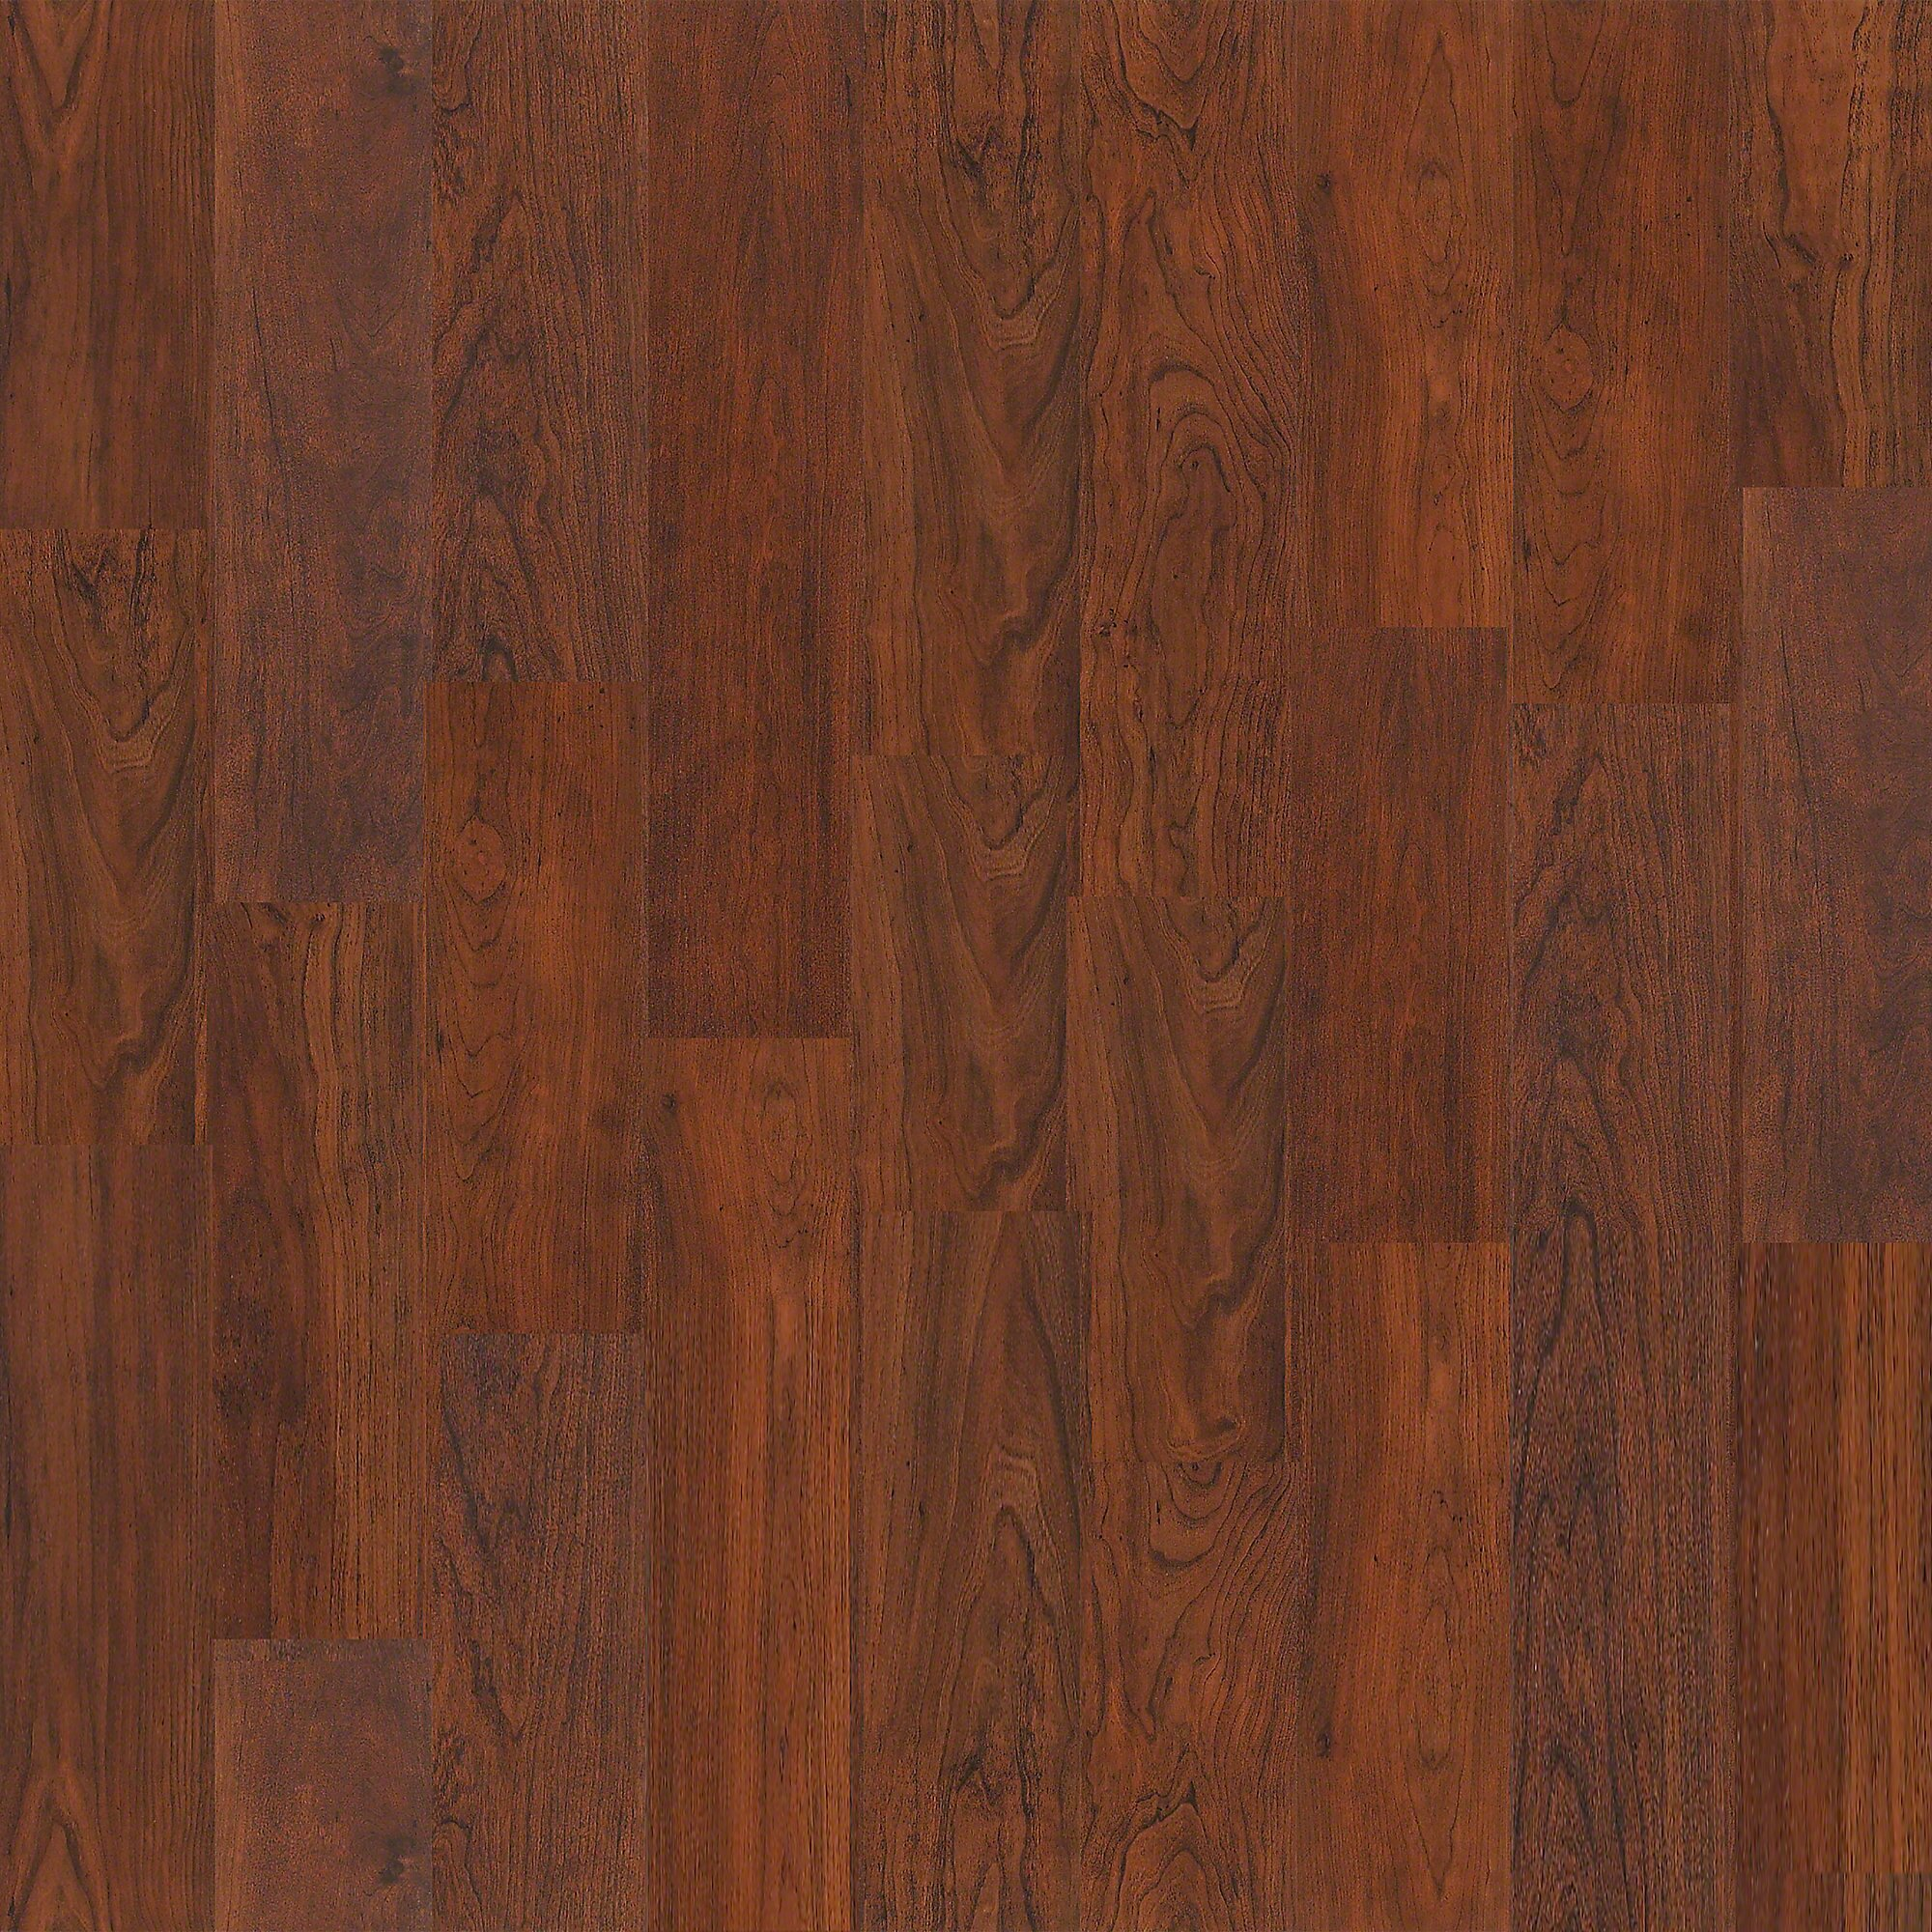 Cherry Laminate Flooring 7m d1359 wild cherry Caribbean Vue Samara 5 X 48 X 8mm Cherry Laminate